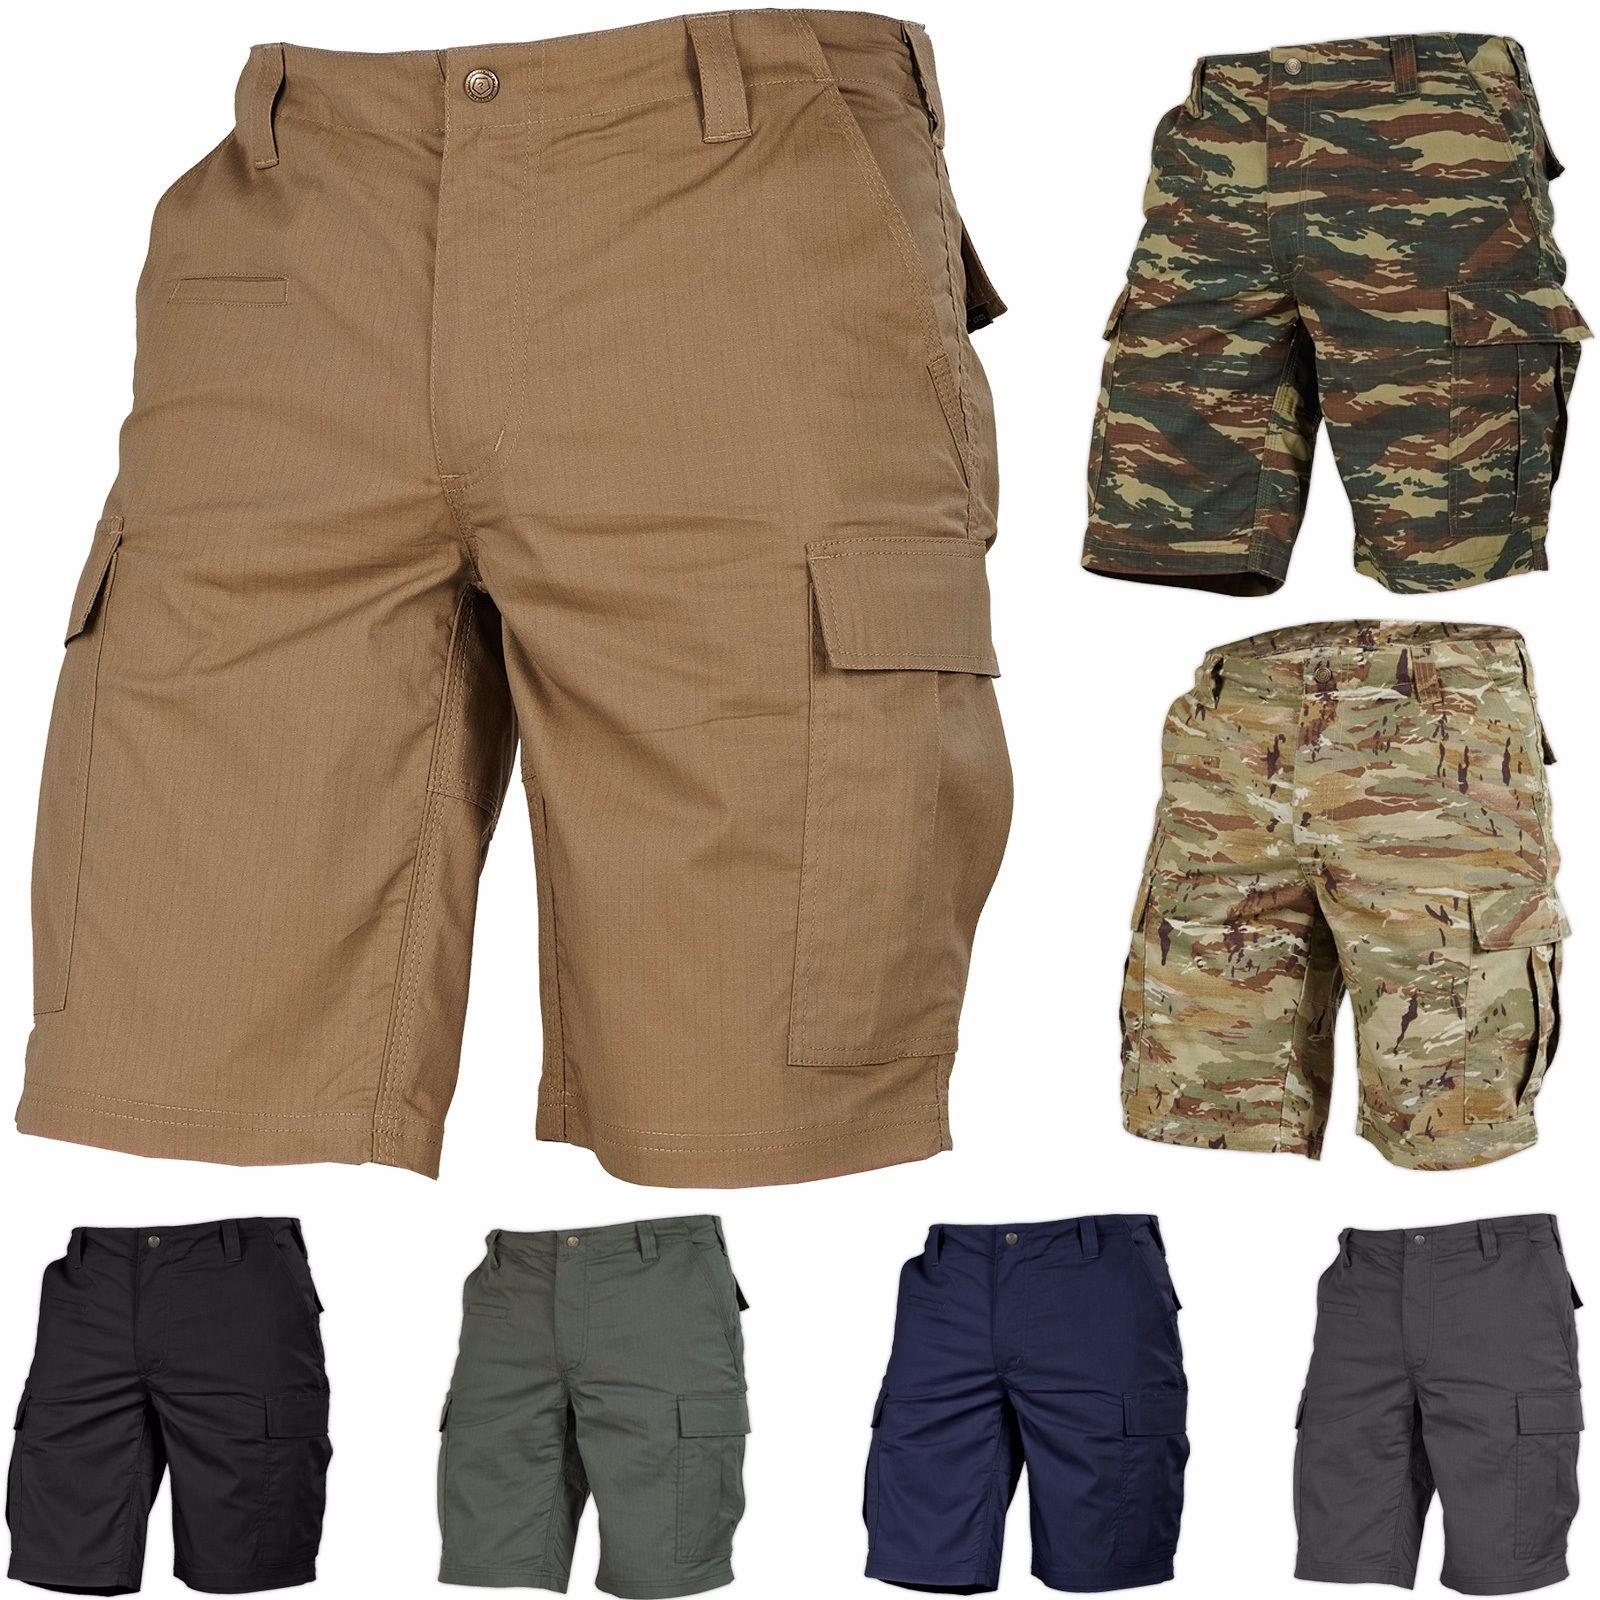 ZOGAA Military Style Camouflage Short 2020 Streetwear Casual Beach Pants 7 Color Men Short  Workout Clothing Men Plus Size S-3XL